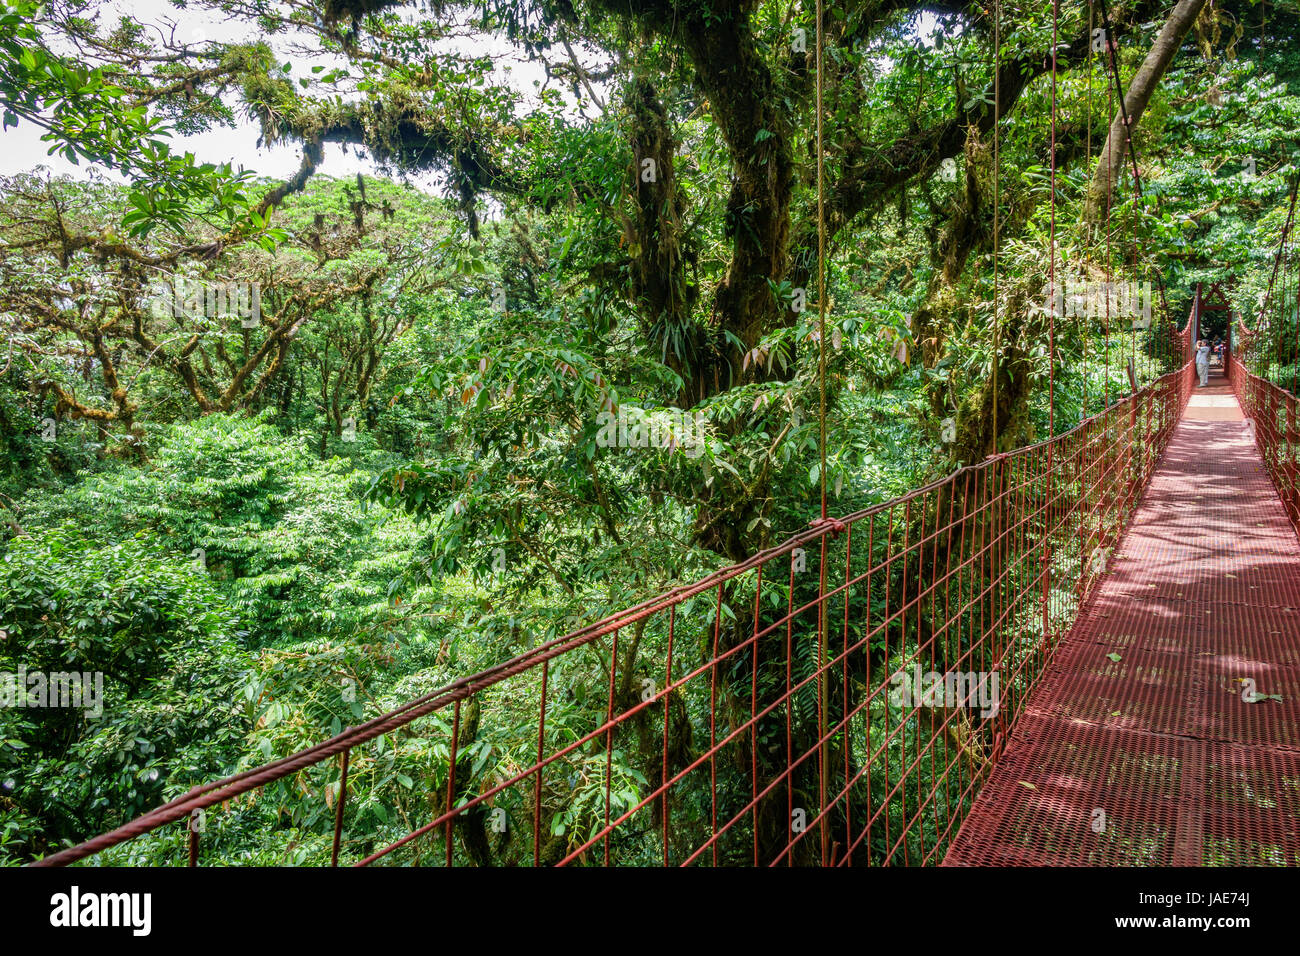 Wide angle view of red hanging bridge in the Rainforest of Monteverde at the right side of the image - Stock Image